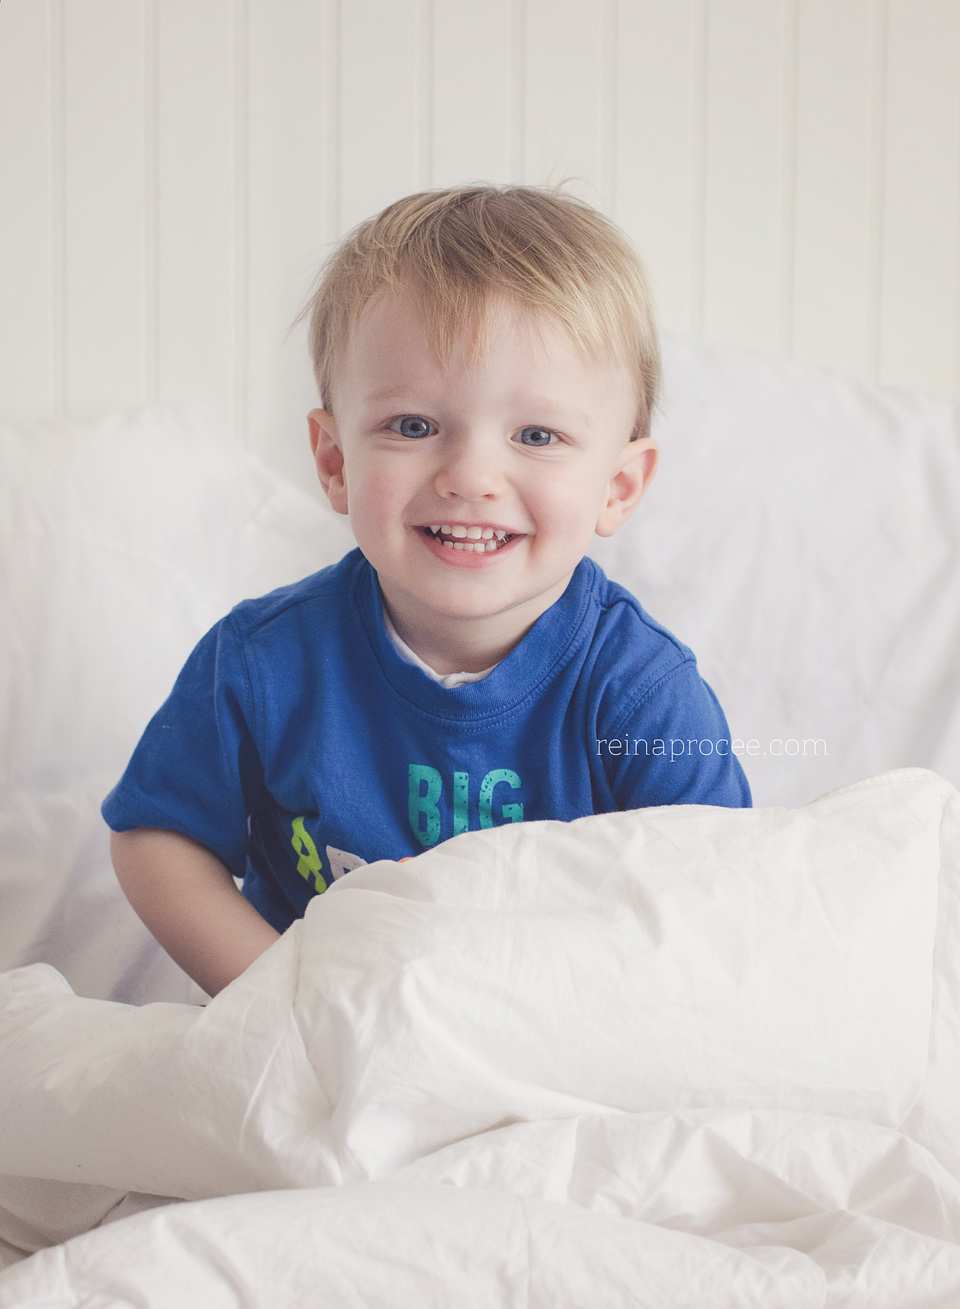 little boy in bed smiling wearing a blue shirt